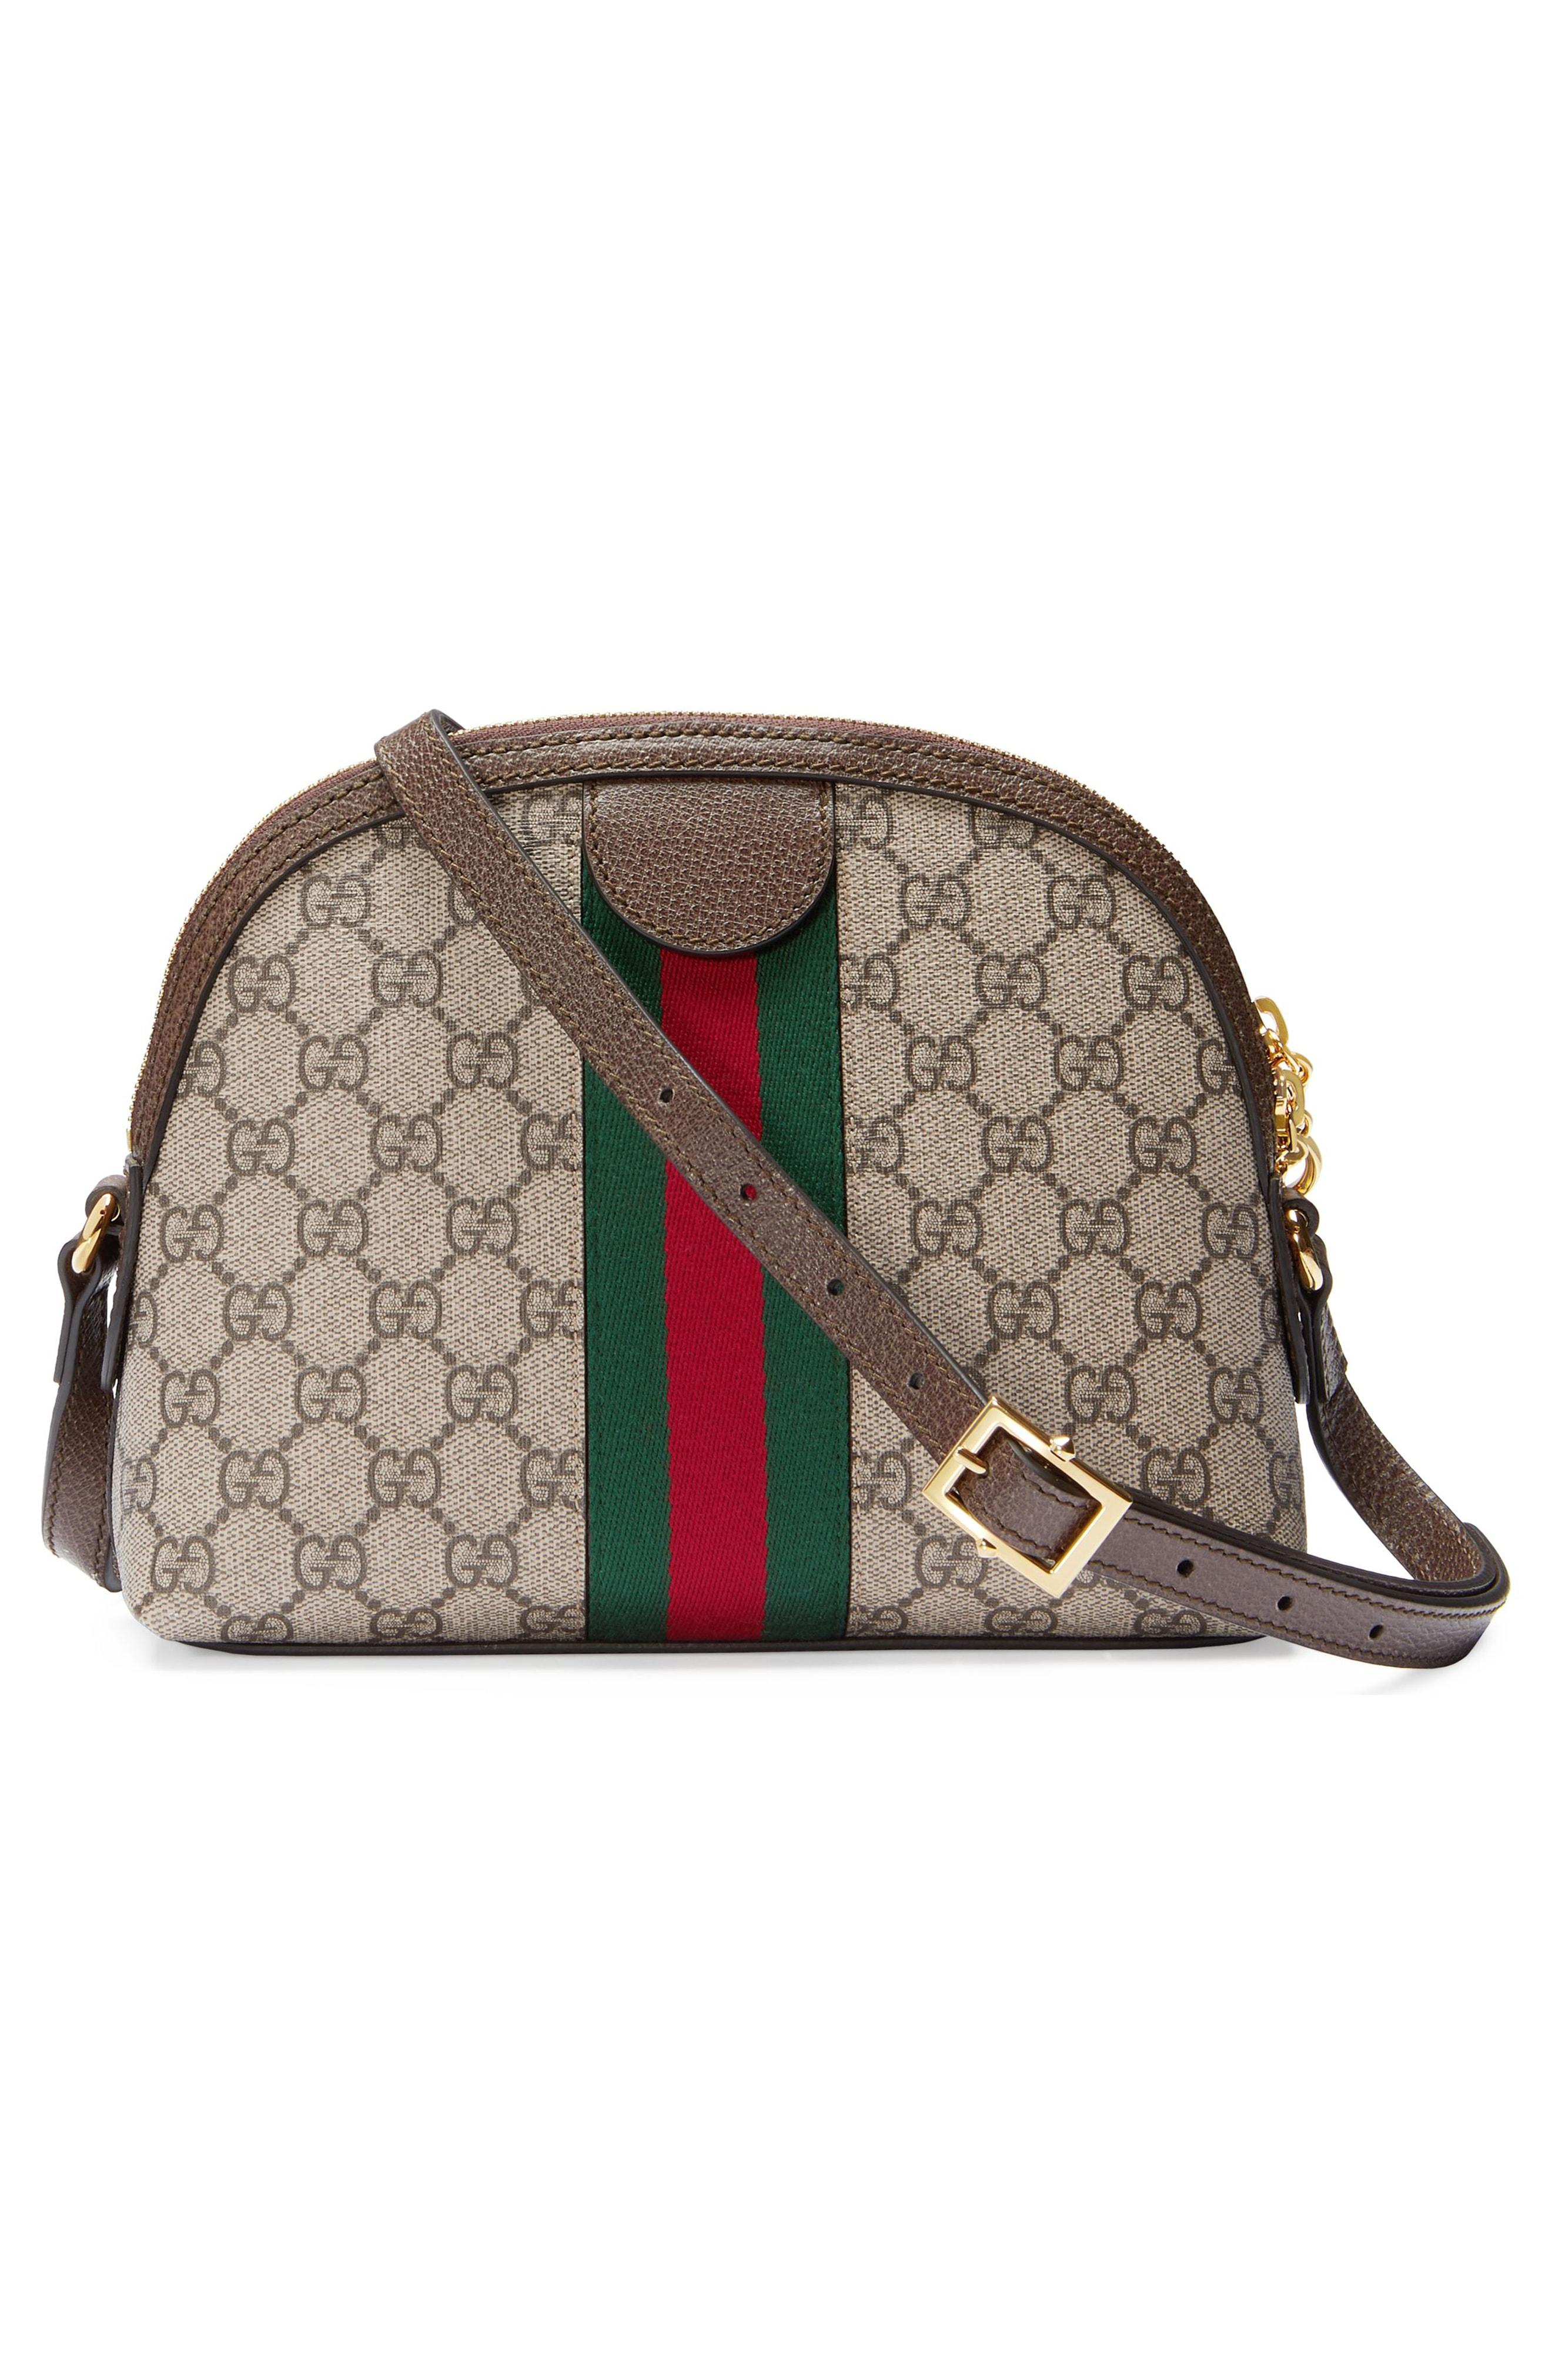 d299ccfa93526c Gucci Ophidia Textured Leather-Trimmed Printed Coated-Canvas ...